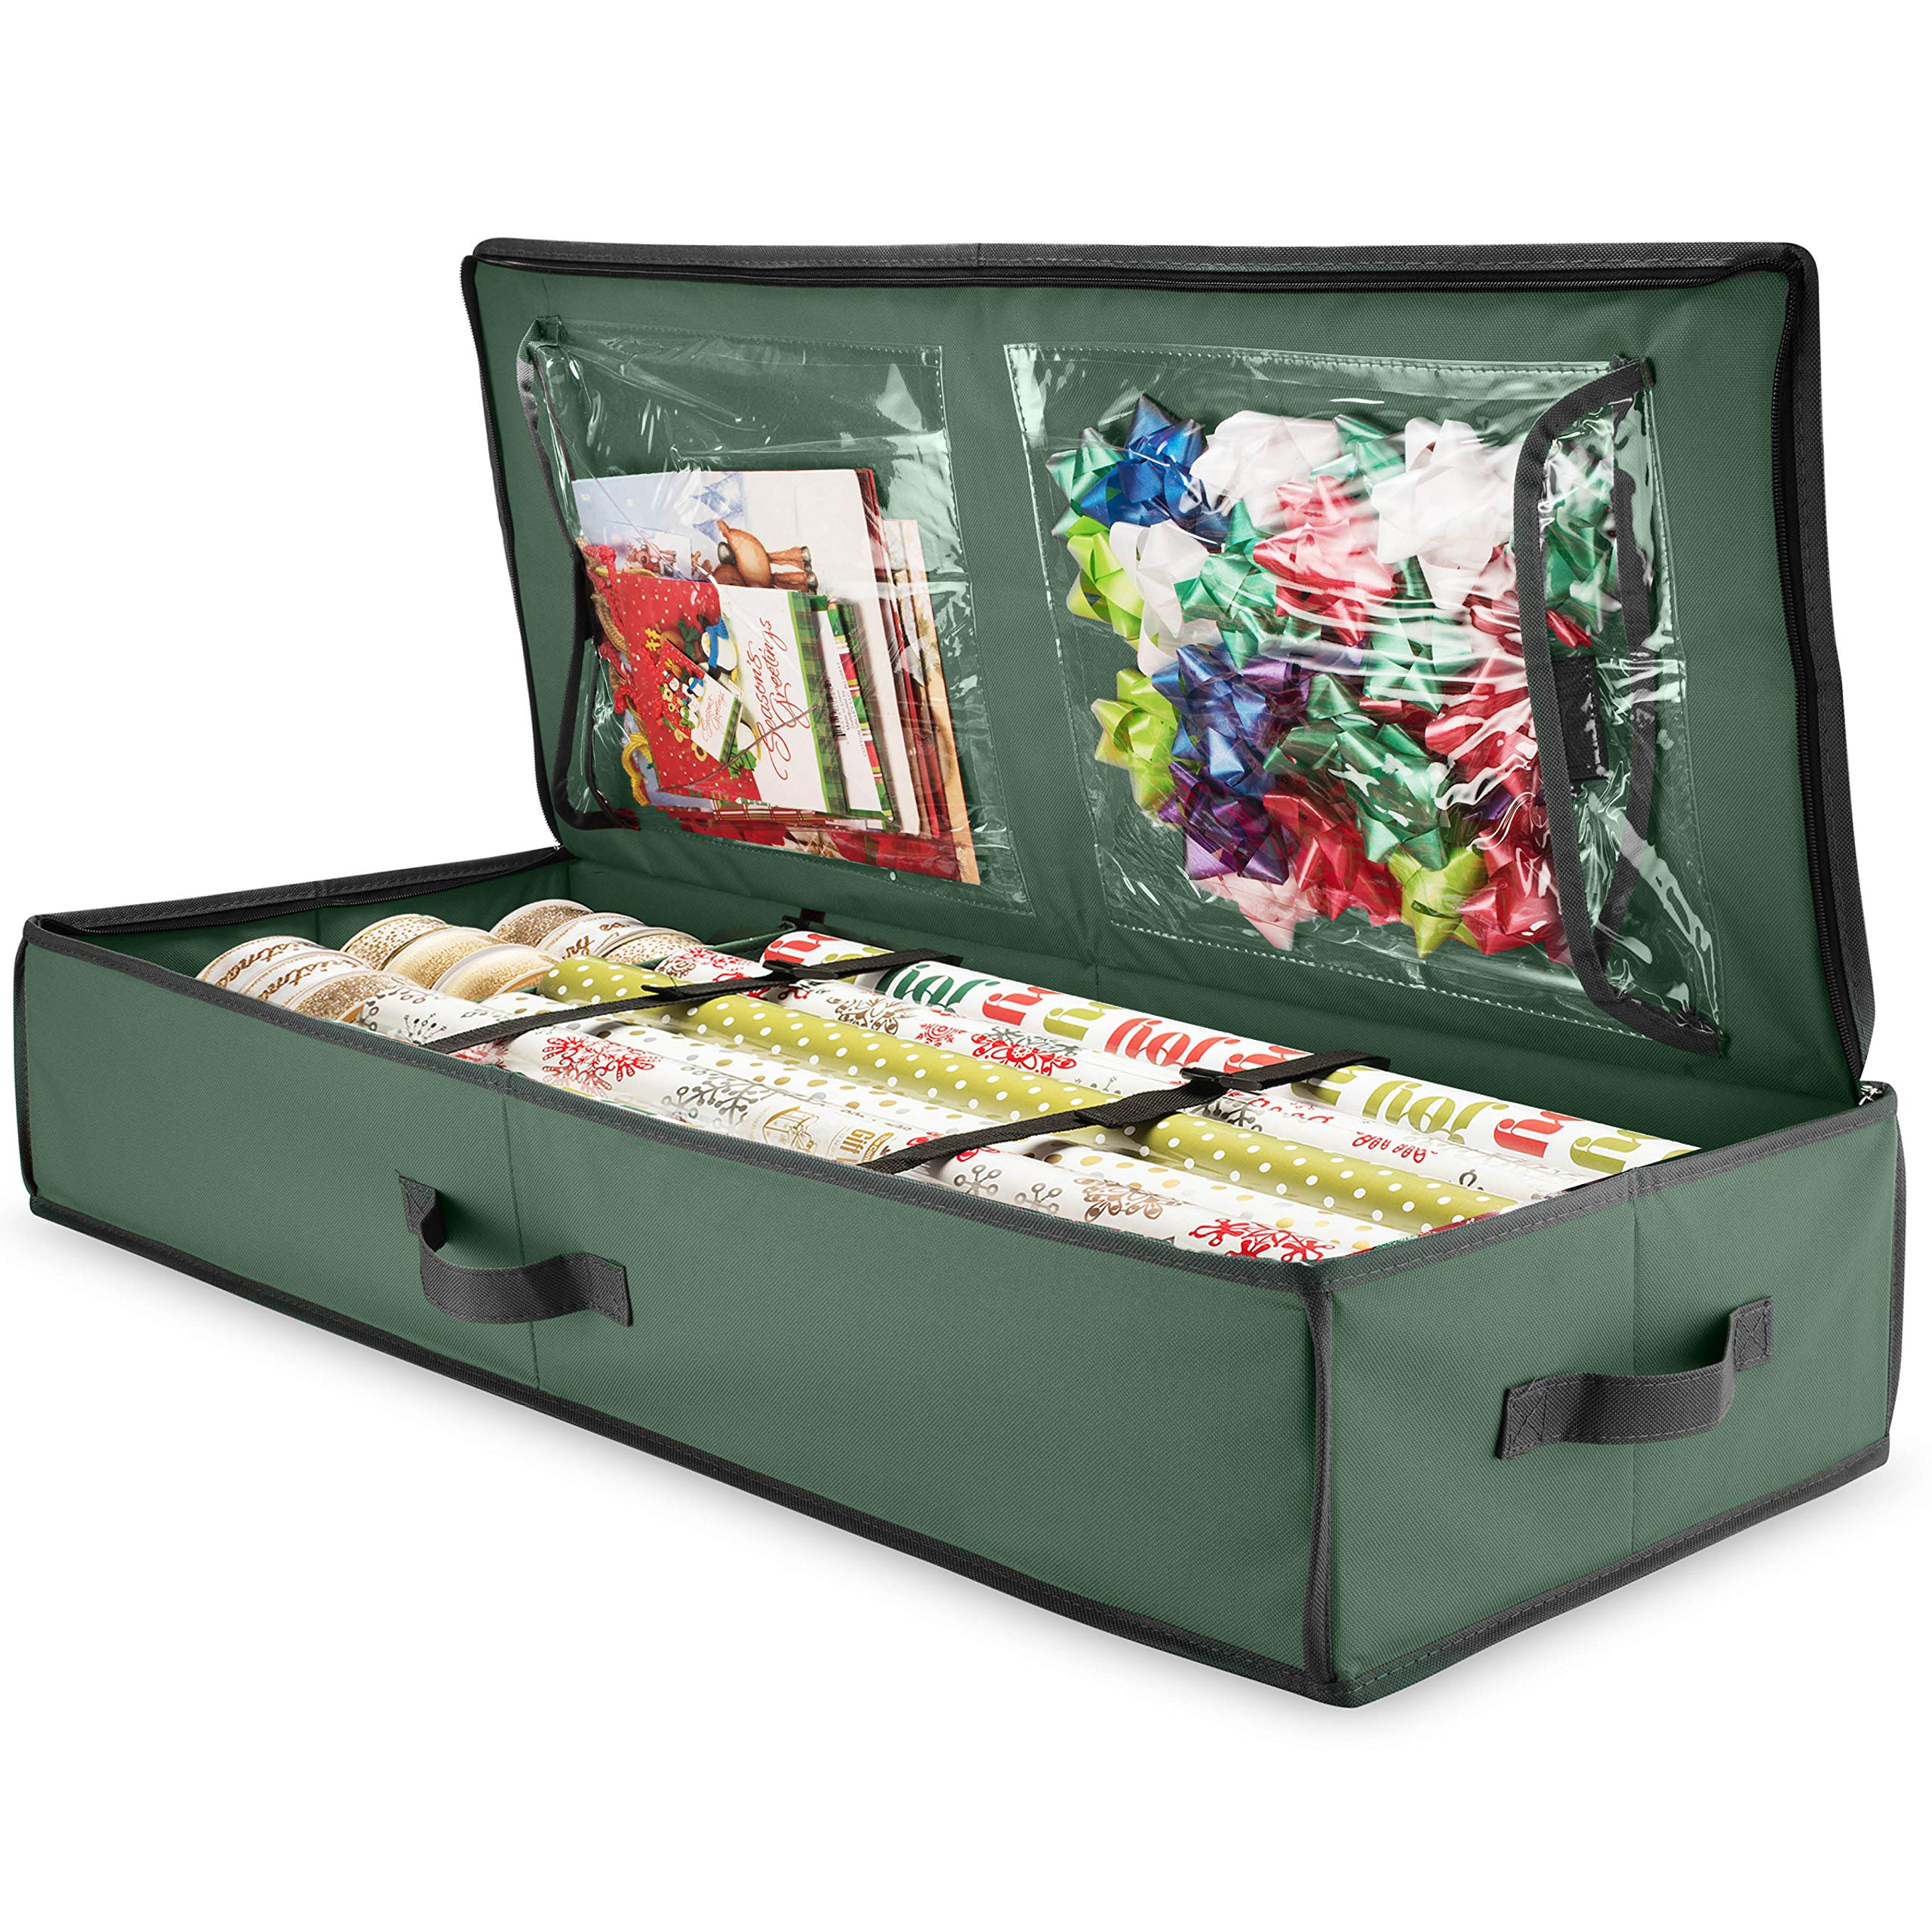 ZOBER Premium Wrap Organizer, Interior Pockets, fits 18-24 Standers Rolls, Underbed Storage, Wrapping Paper Storage Box and Holiday Accessories, 40'' Long - Tear Proof Fabric - 5 Year Warranty by ZOBER